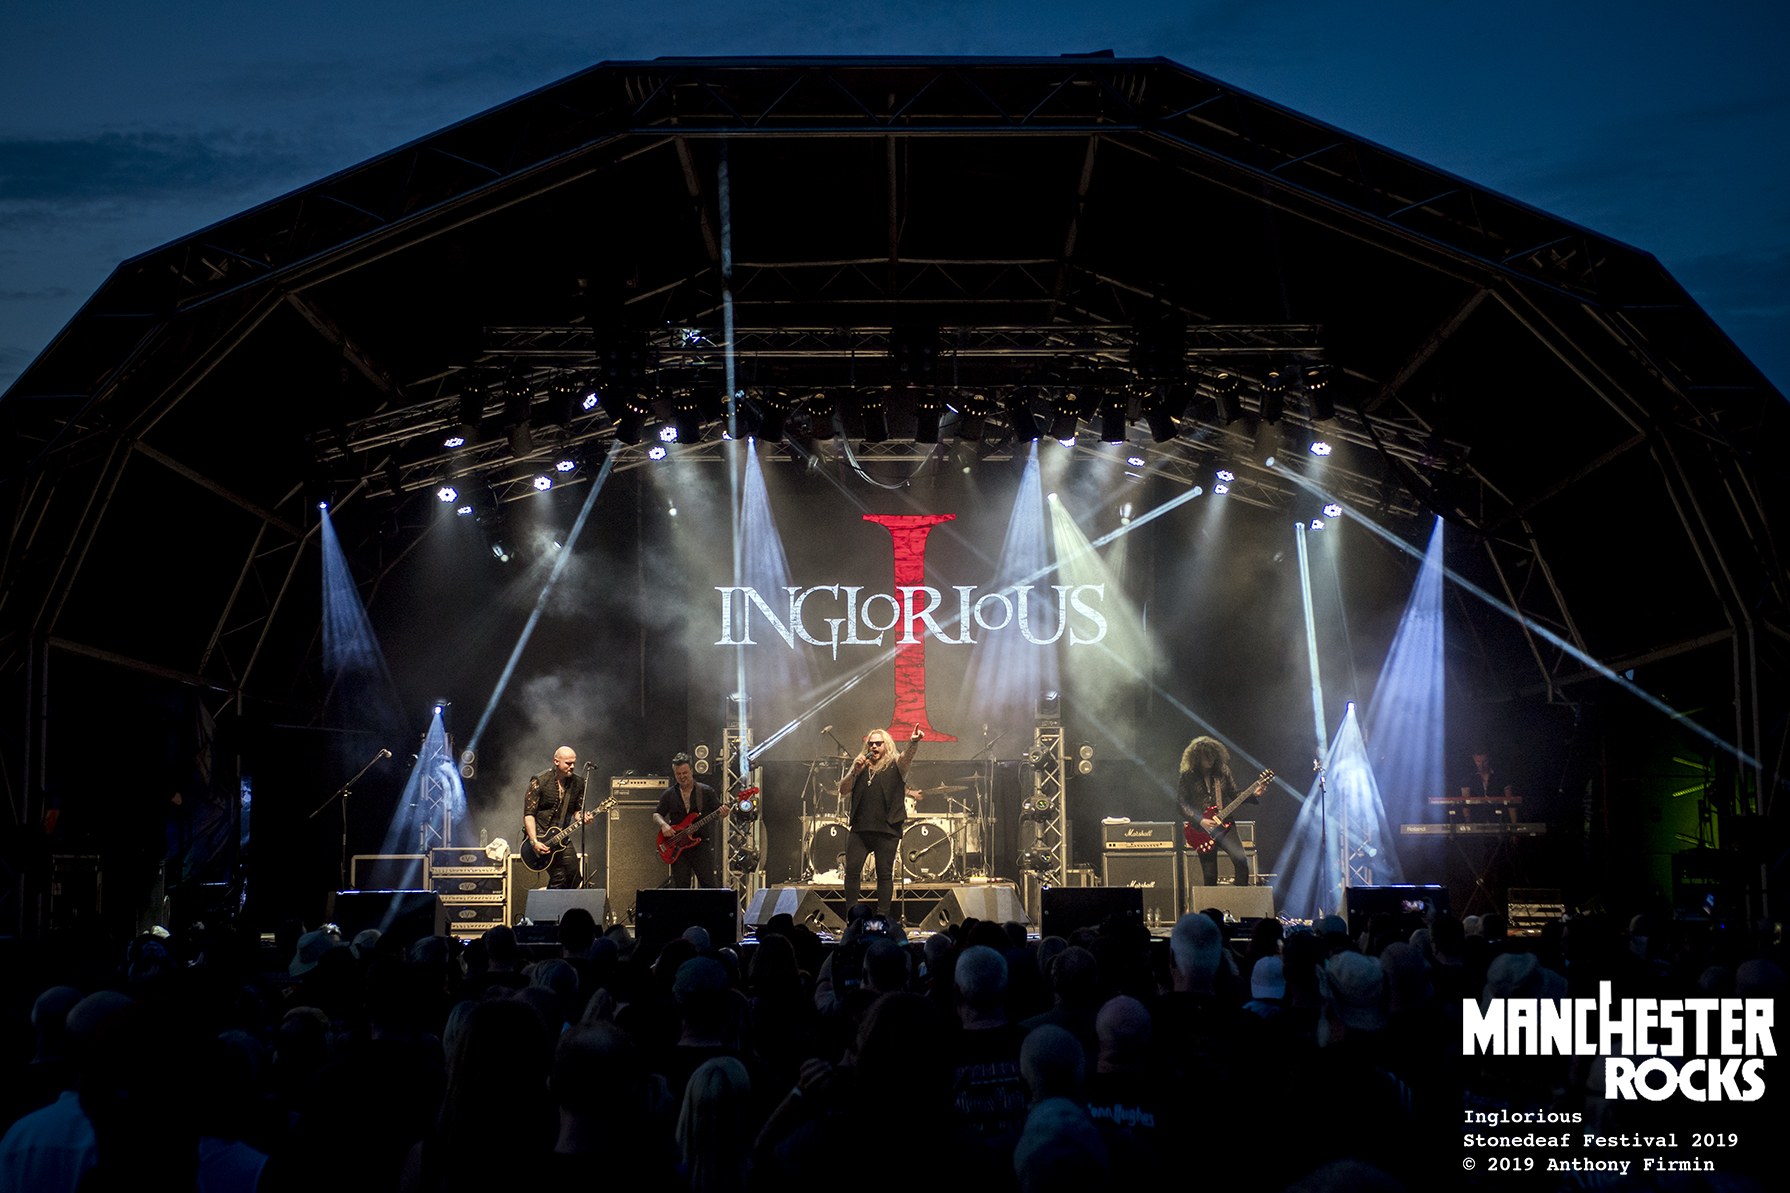 Inglorious-Stonedeaf-1447-small.jpg